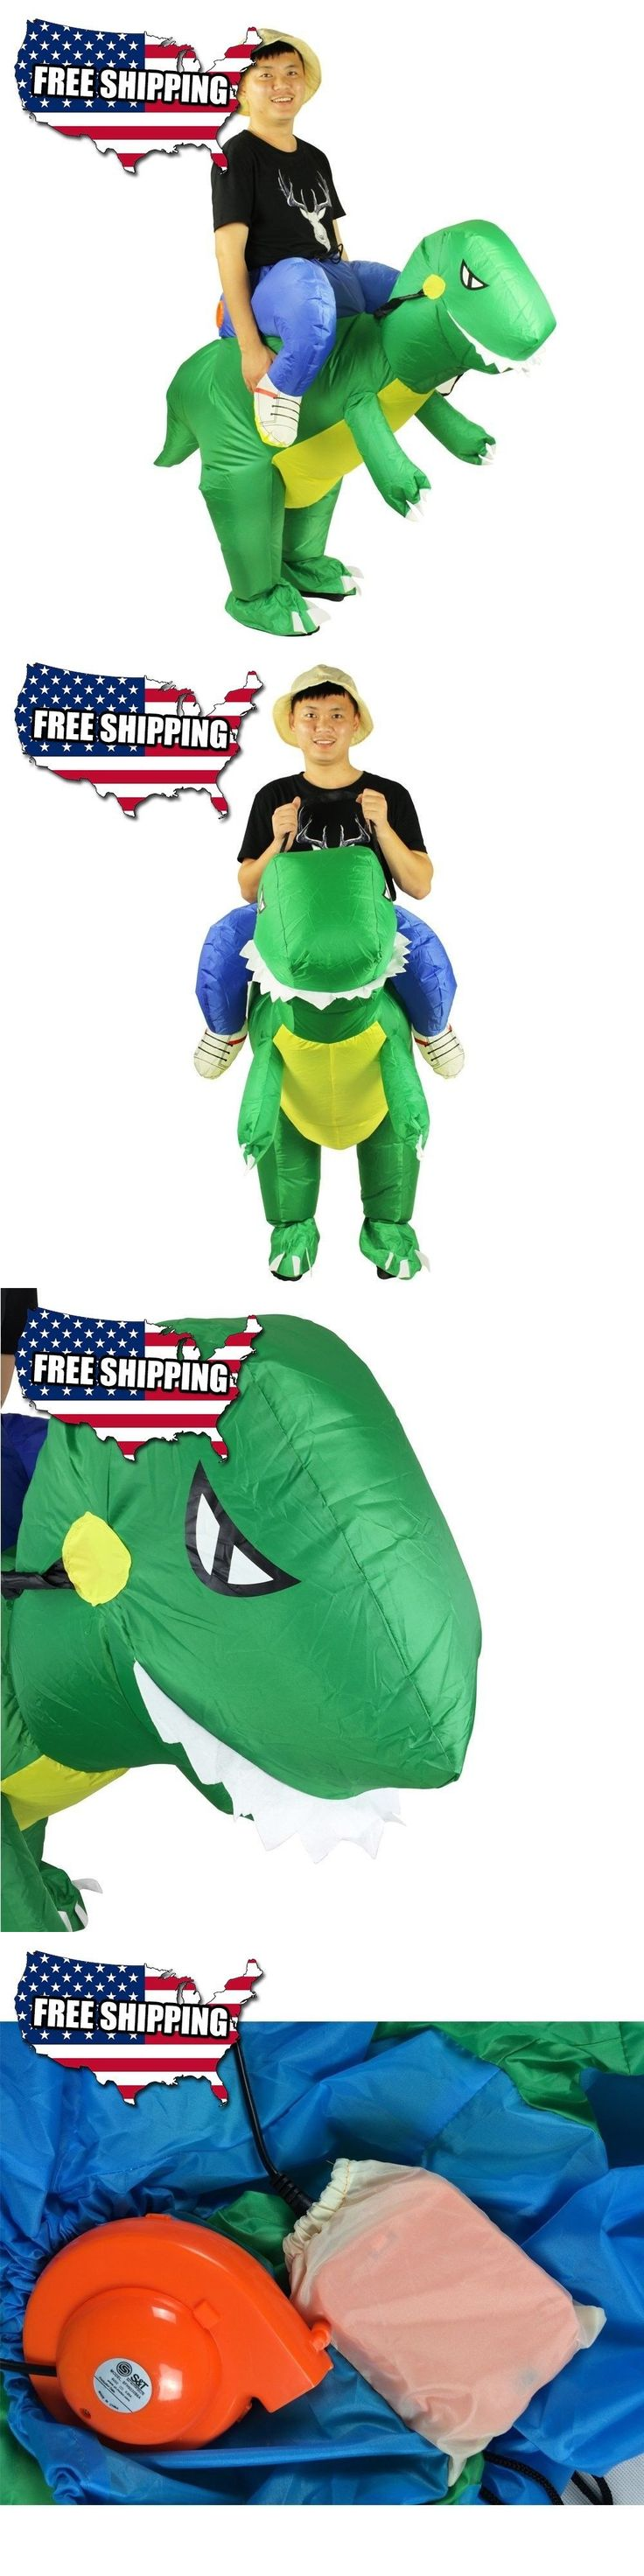 Unisex 86207: Wecloth Halloween Costume Inflatable Ride Green Bluered Dinosaur Unicorn T-Rex H -> BUY IT NOW ONLY: $30.43 on eBay!